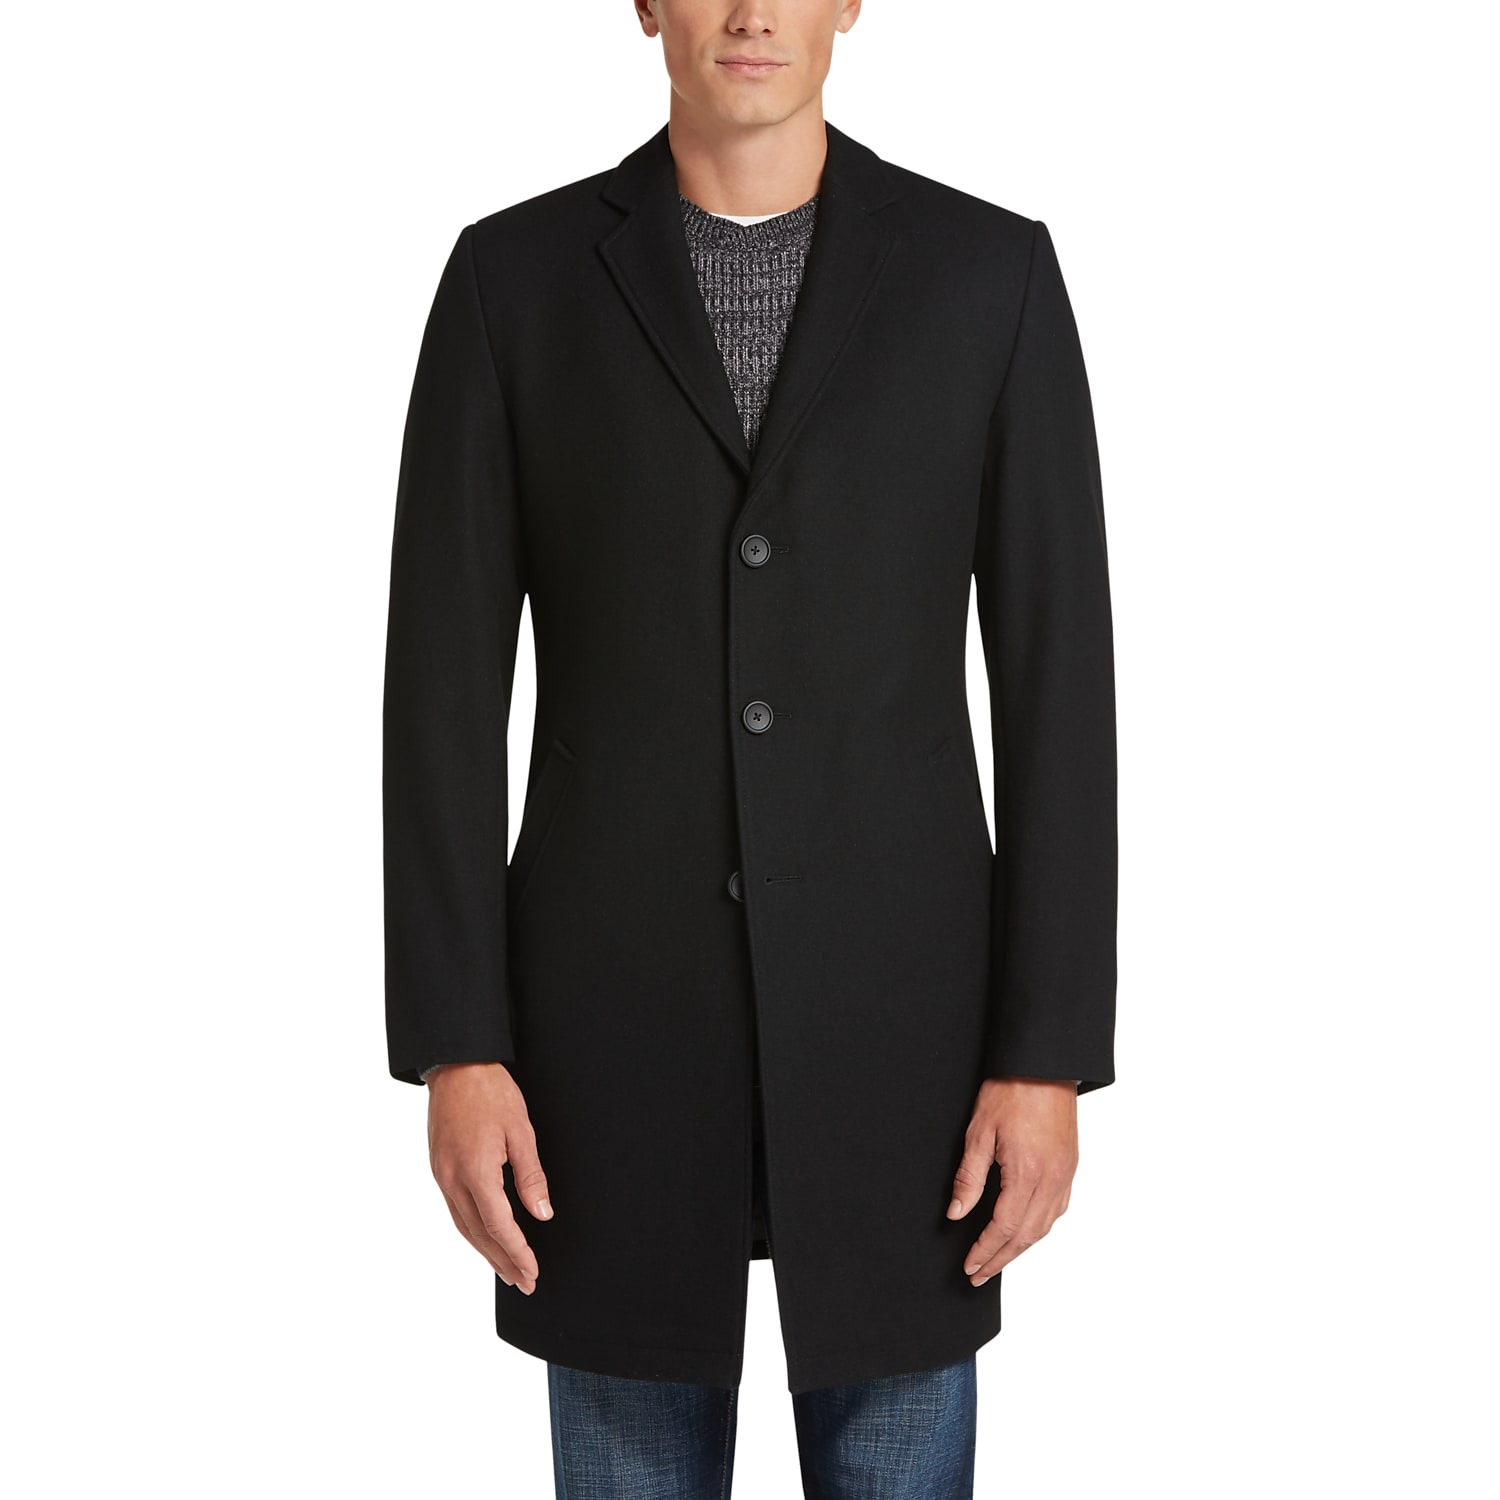 Mens Topcoats, Outerwear - Awearness Kenneth Cole AWEAR-TECH Black Topcoat  - Men's Wearhouse